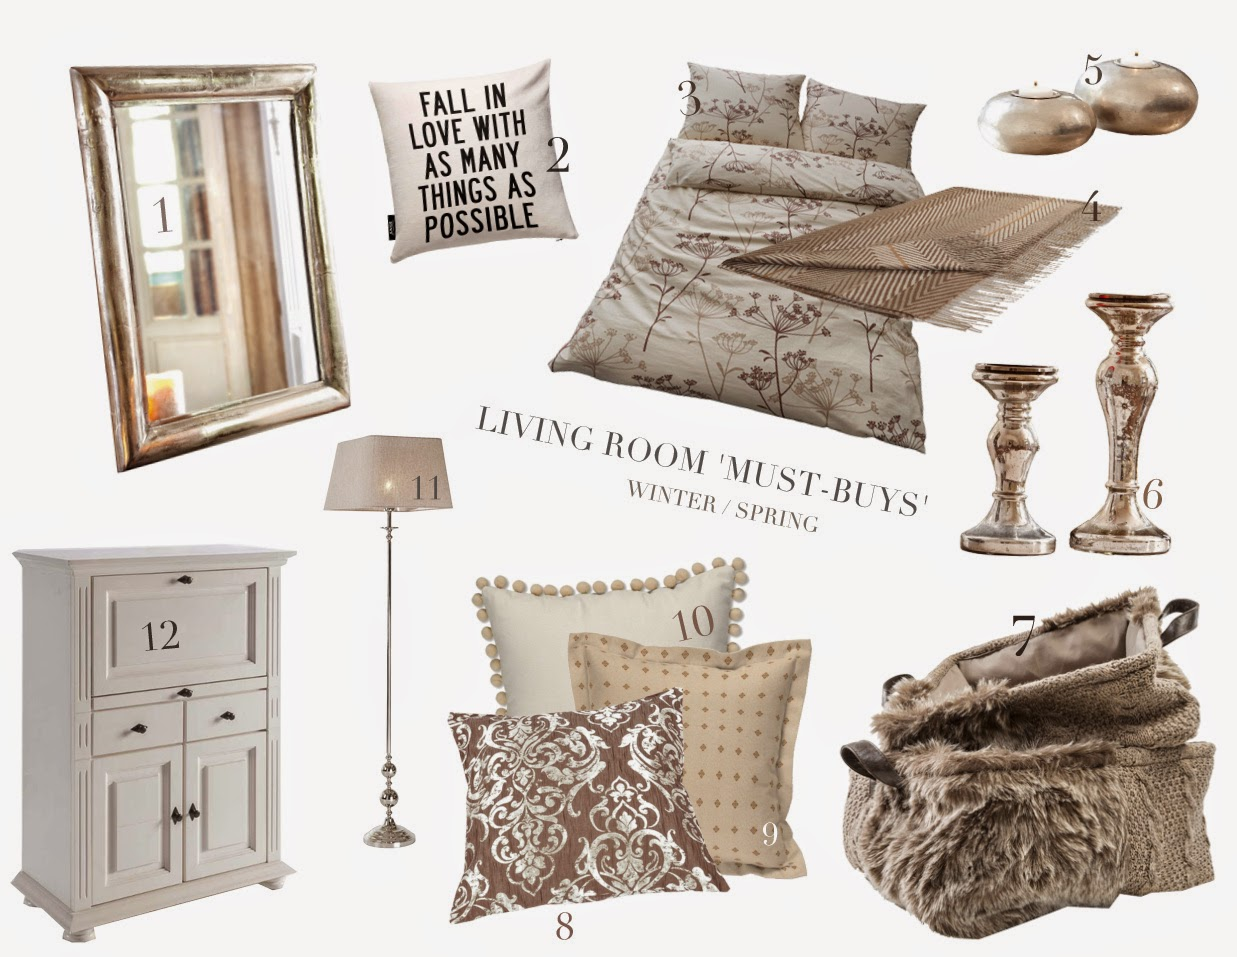 This Post Is About The Essential Items Everyone Needs In His Room Here Are Some Compatible For Winter Spring 14 15